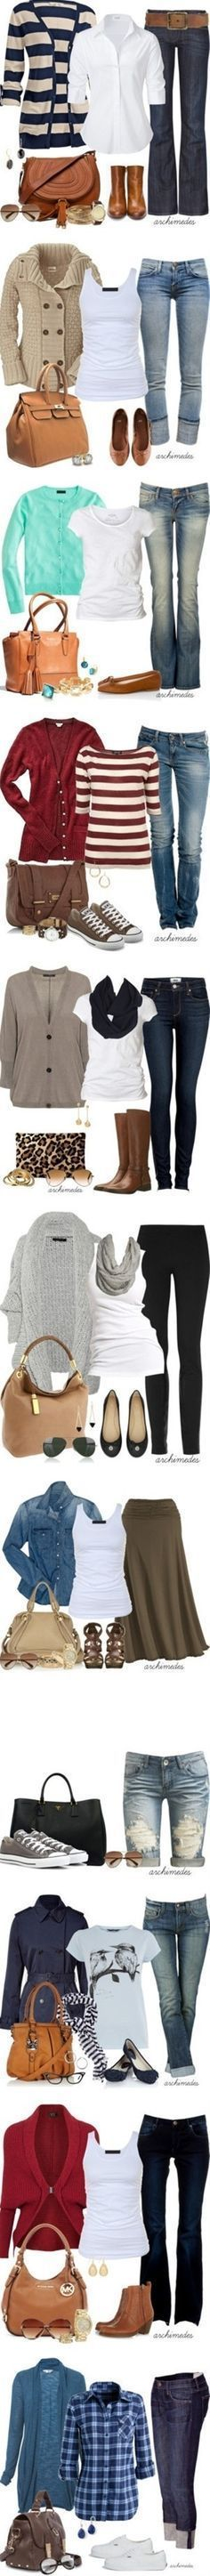 Autumn outfit ideas 2014